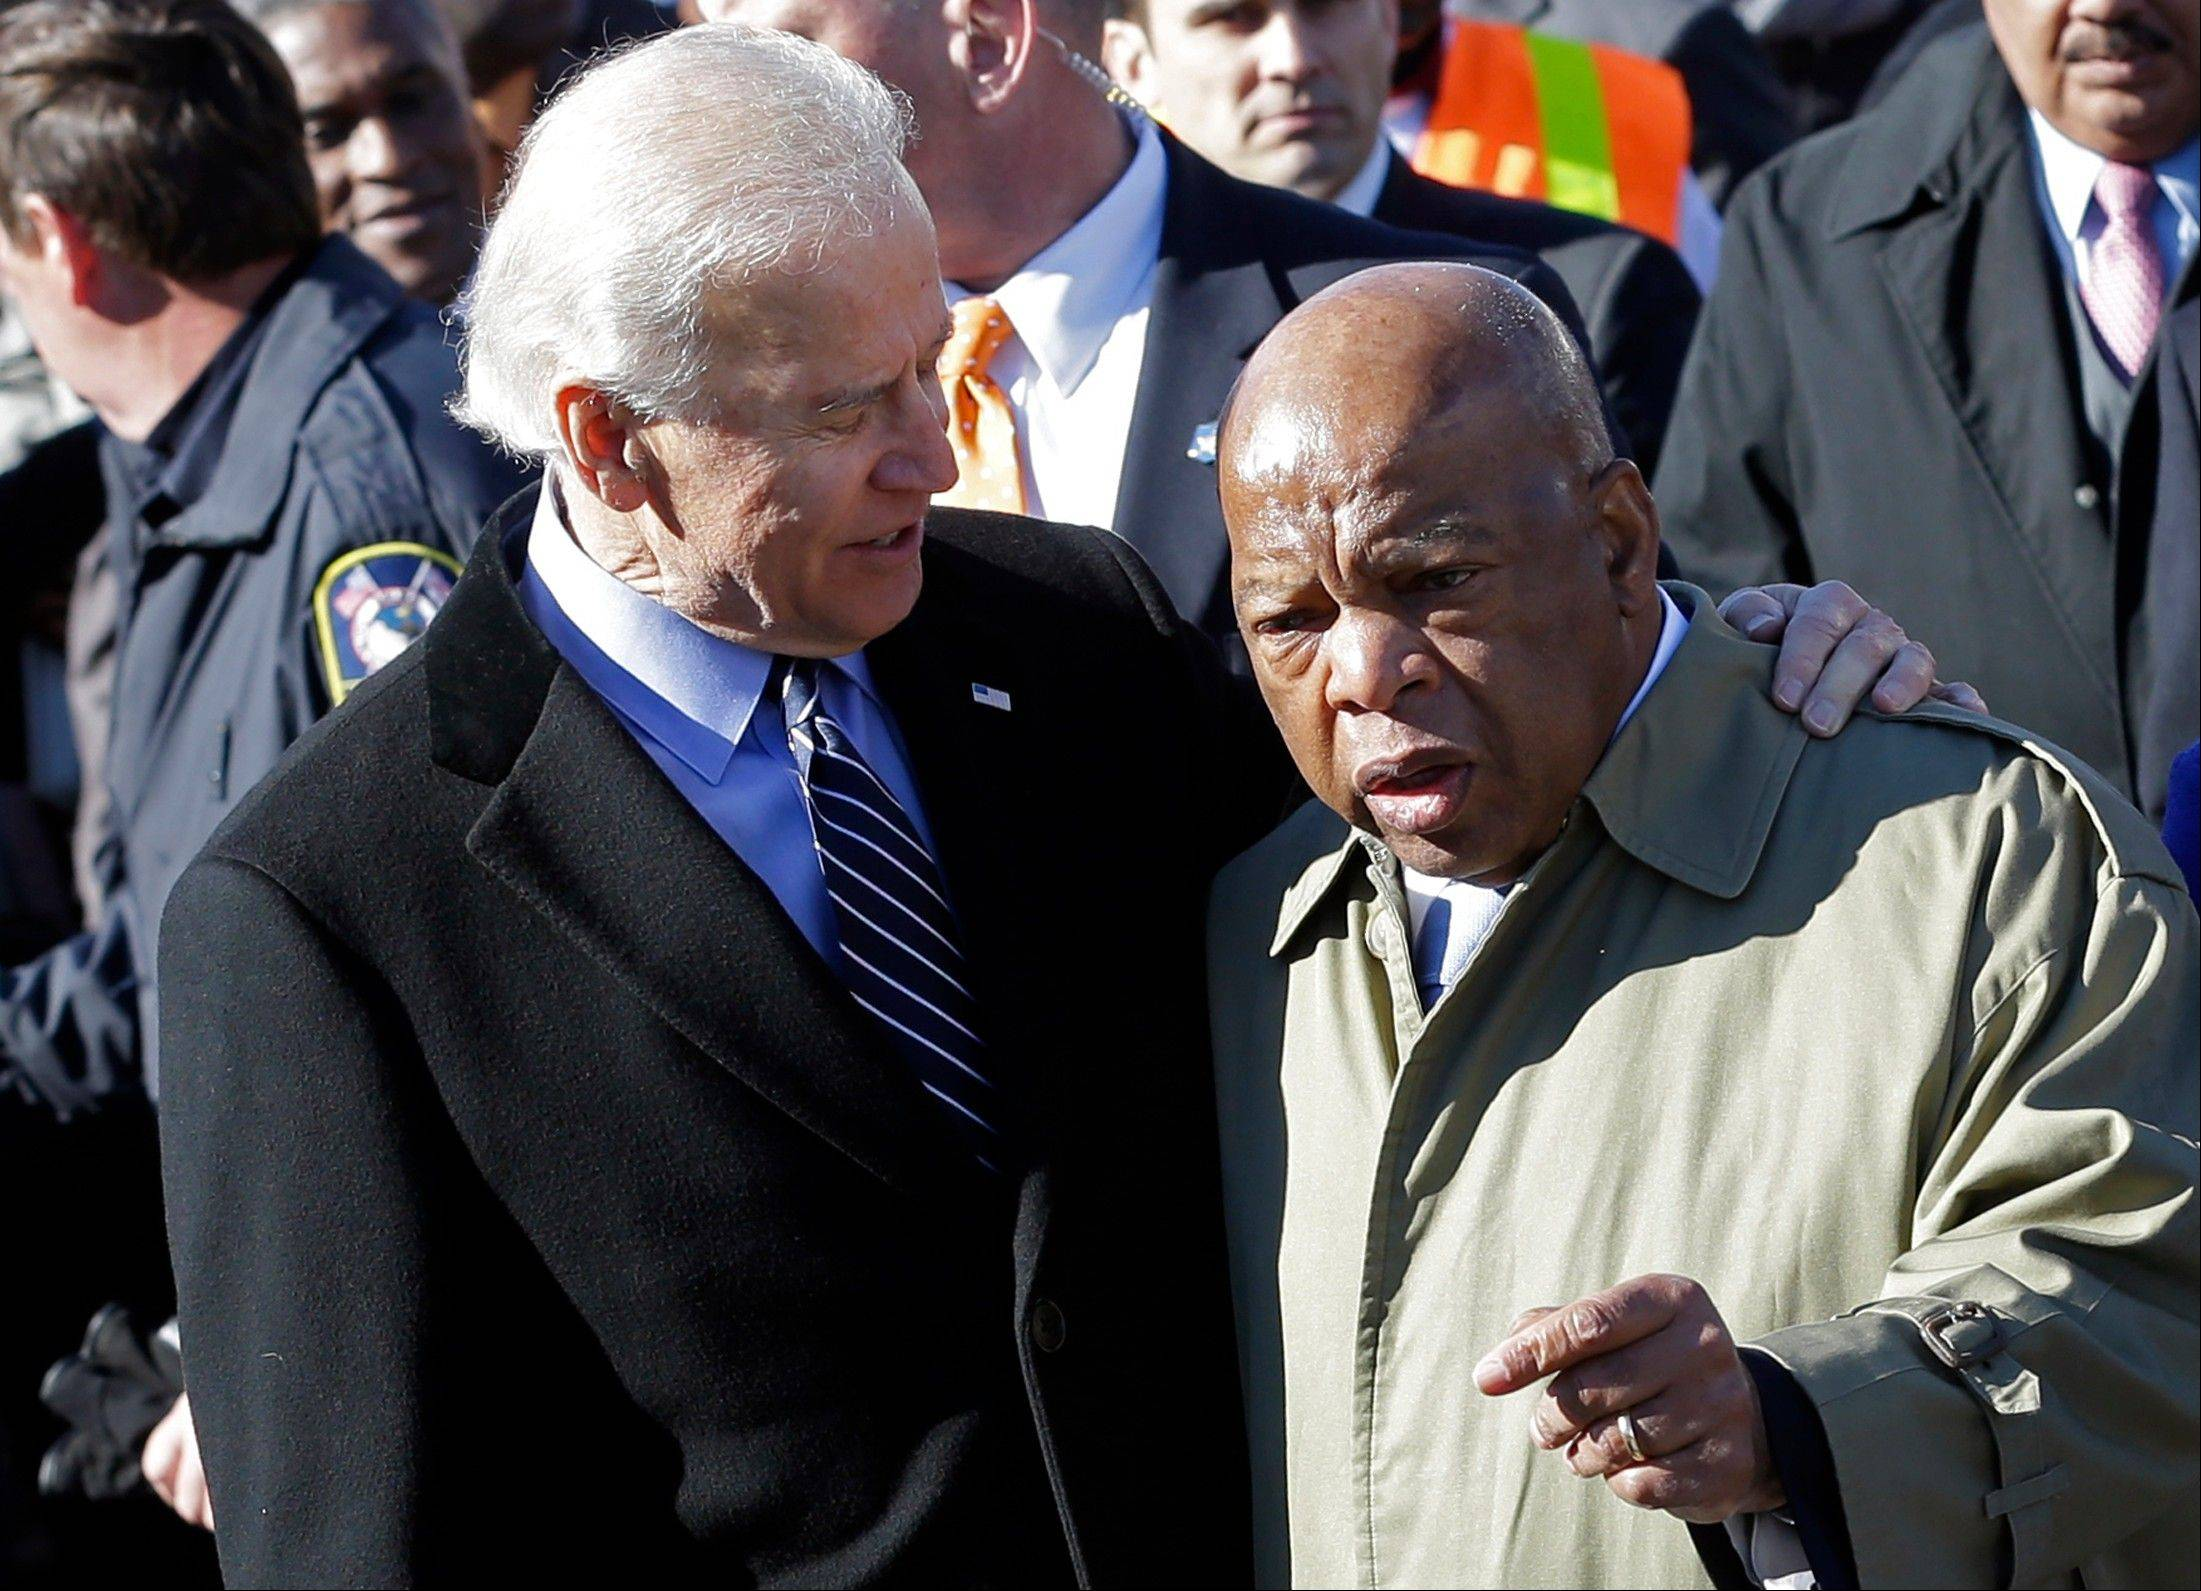 Vice President Joe Biden embraces Rep. John Lewis, as they prepare to lead a group across the Edmund Pettus Bridge in Selma, Ala., Sunday. They were commemorating the 48th anniversary of Bloody Sunday, when police officers beat marchers when they crossed the bridge on a march from Selma to Montgomery.